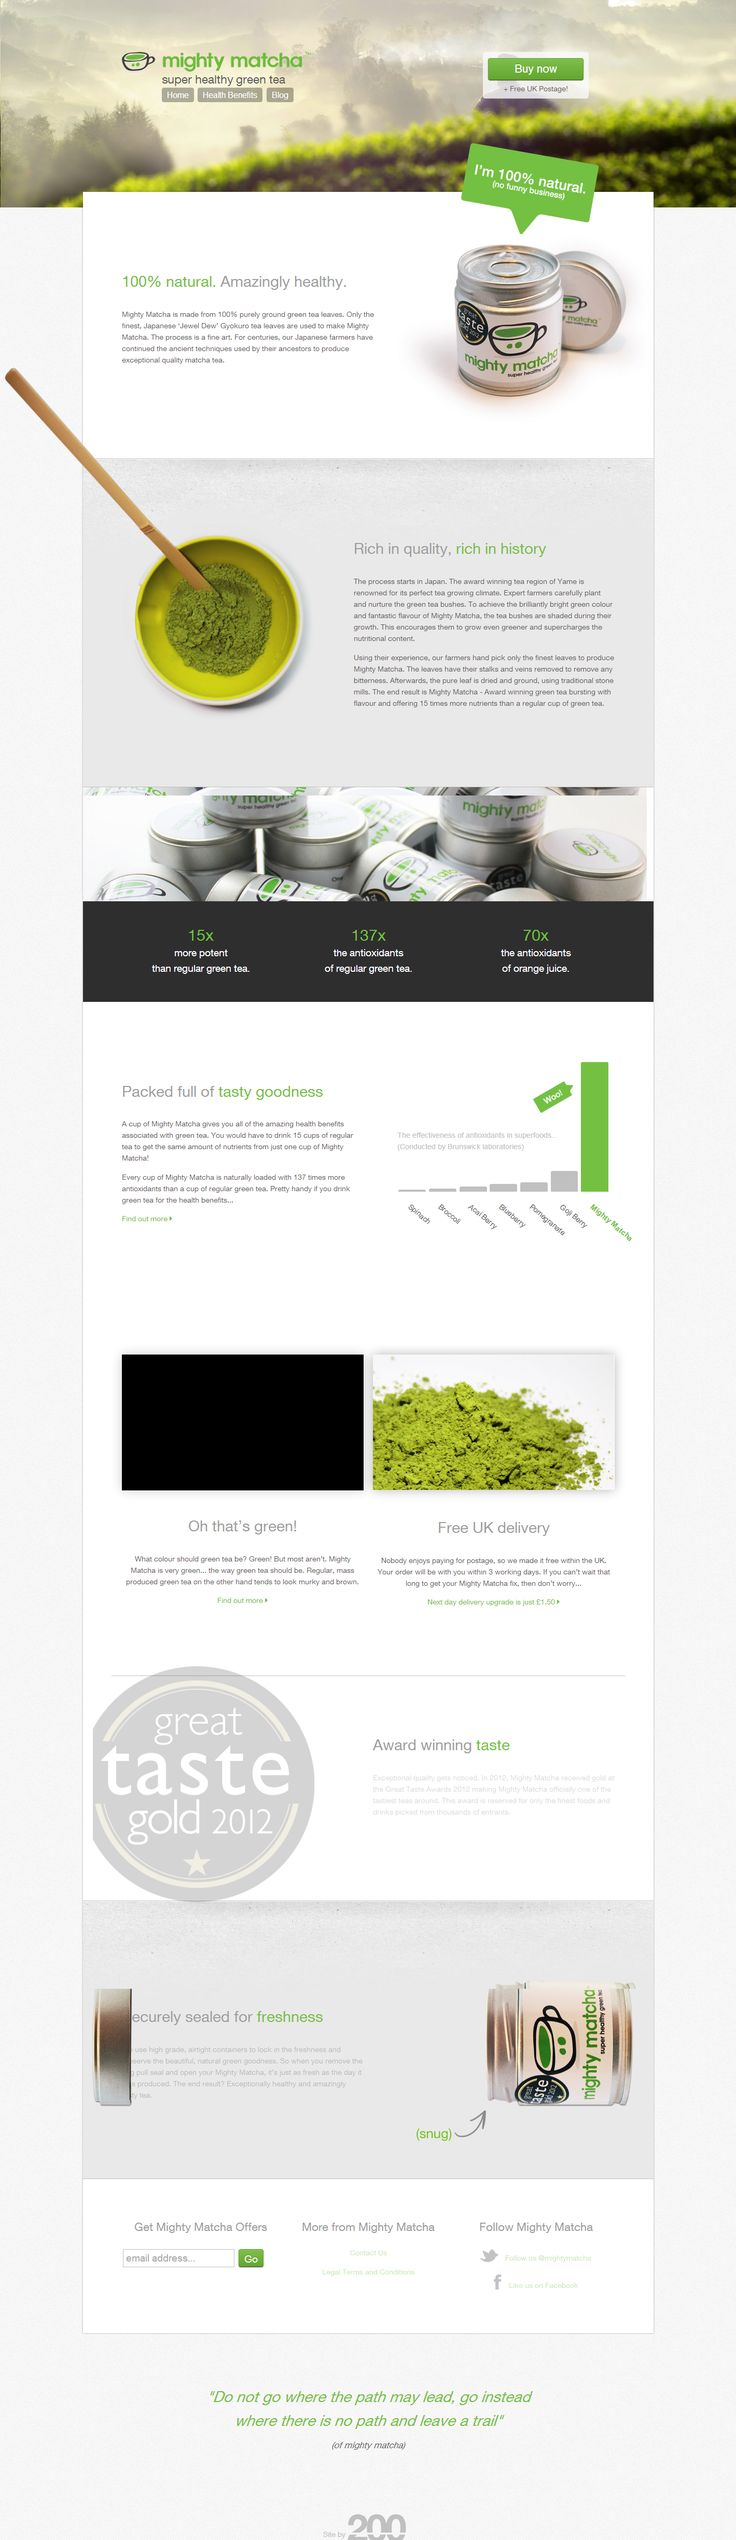 http://www.mightymatcha.com/ We love Webdesign, Wordpress and SEO. Come visit us in Vienna, Austria or at http://www.ostheimer.at